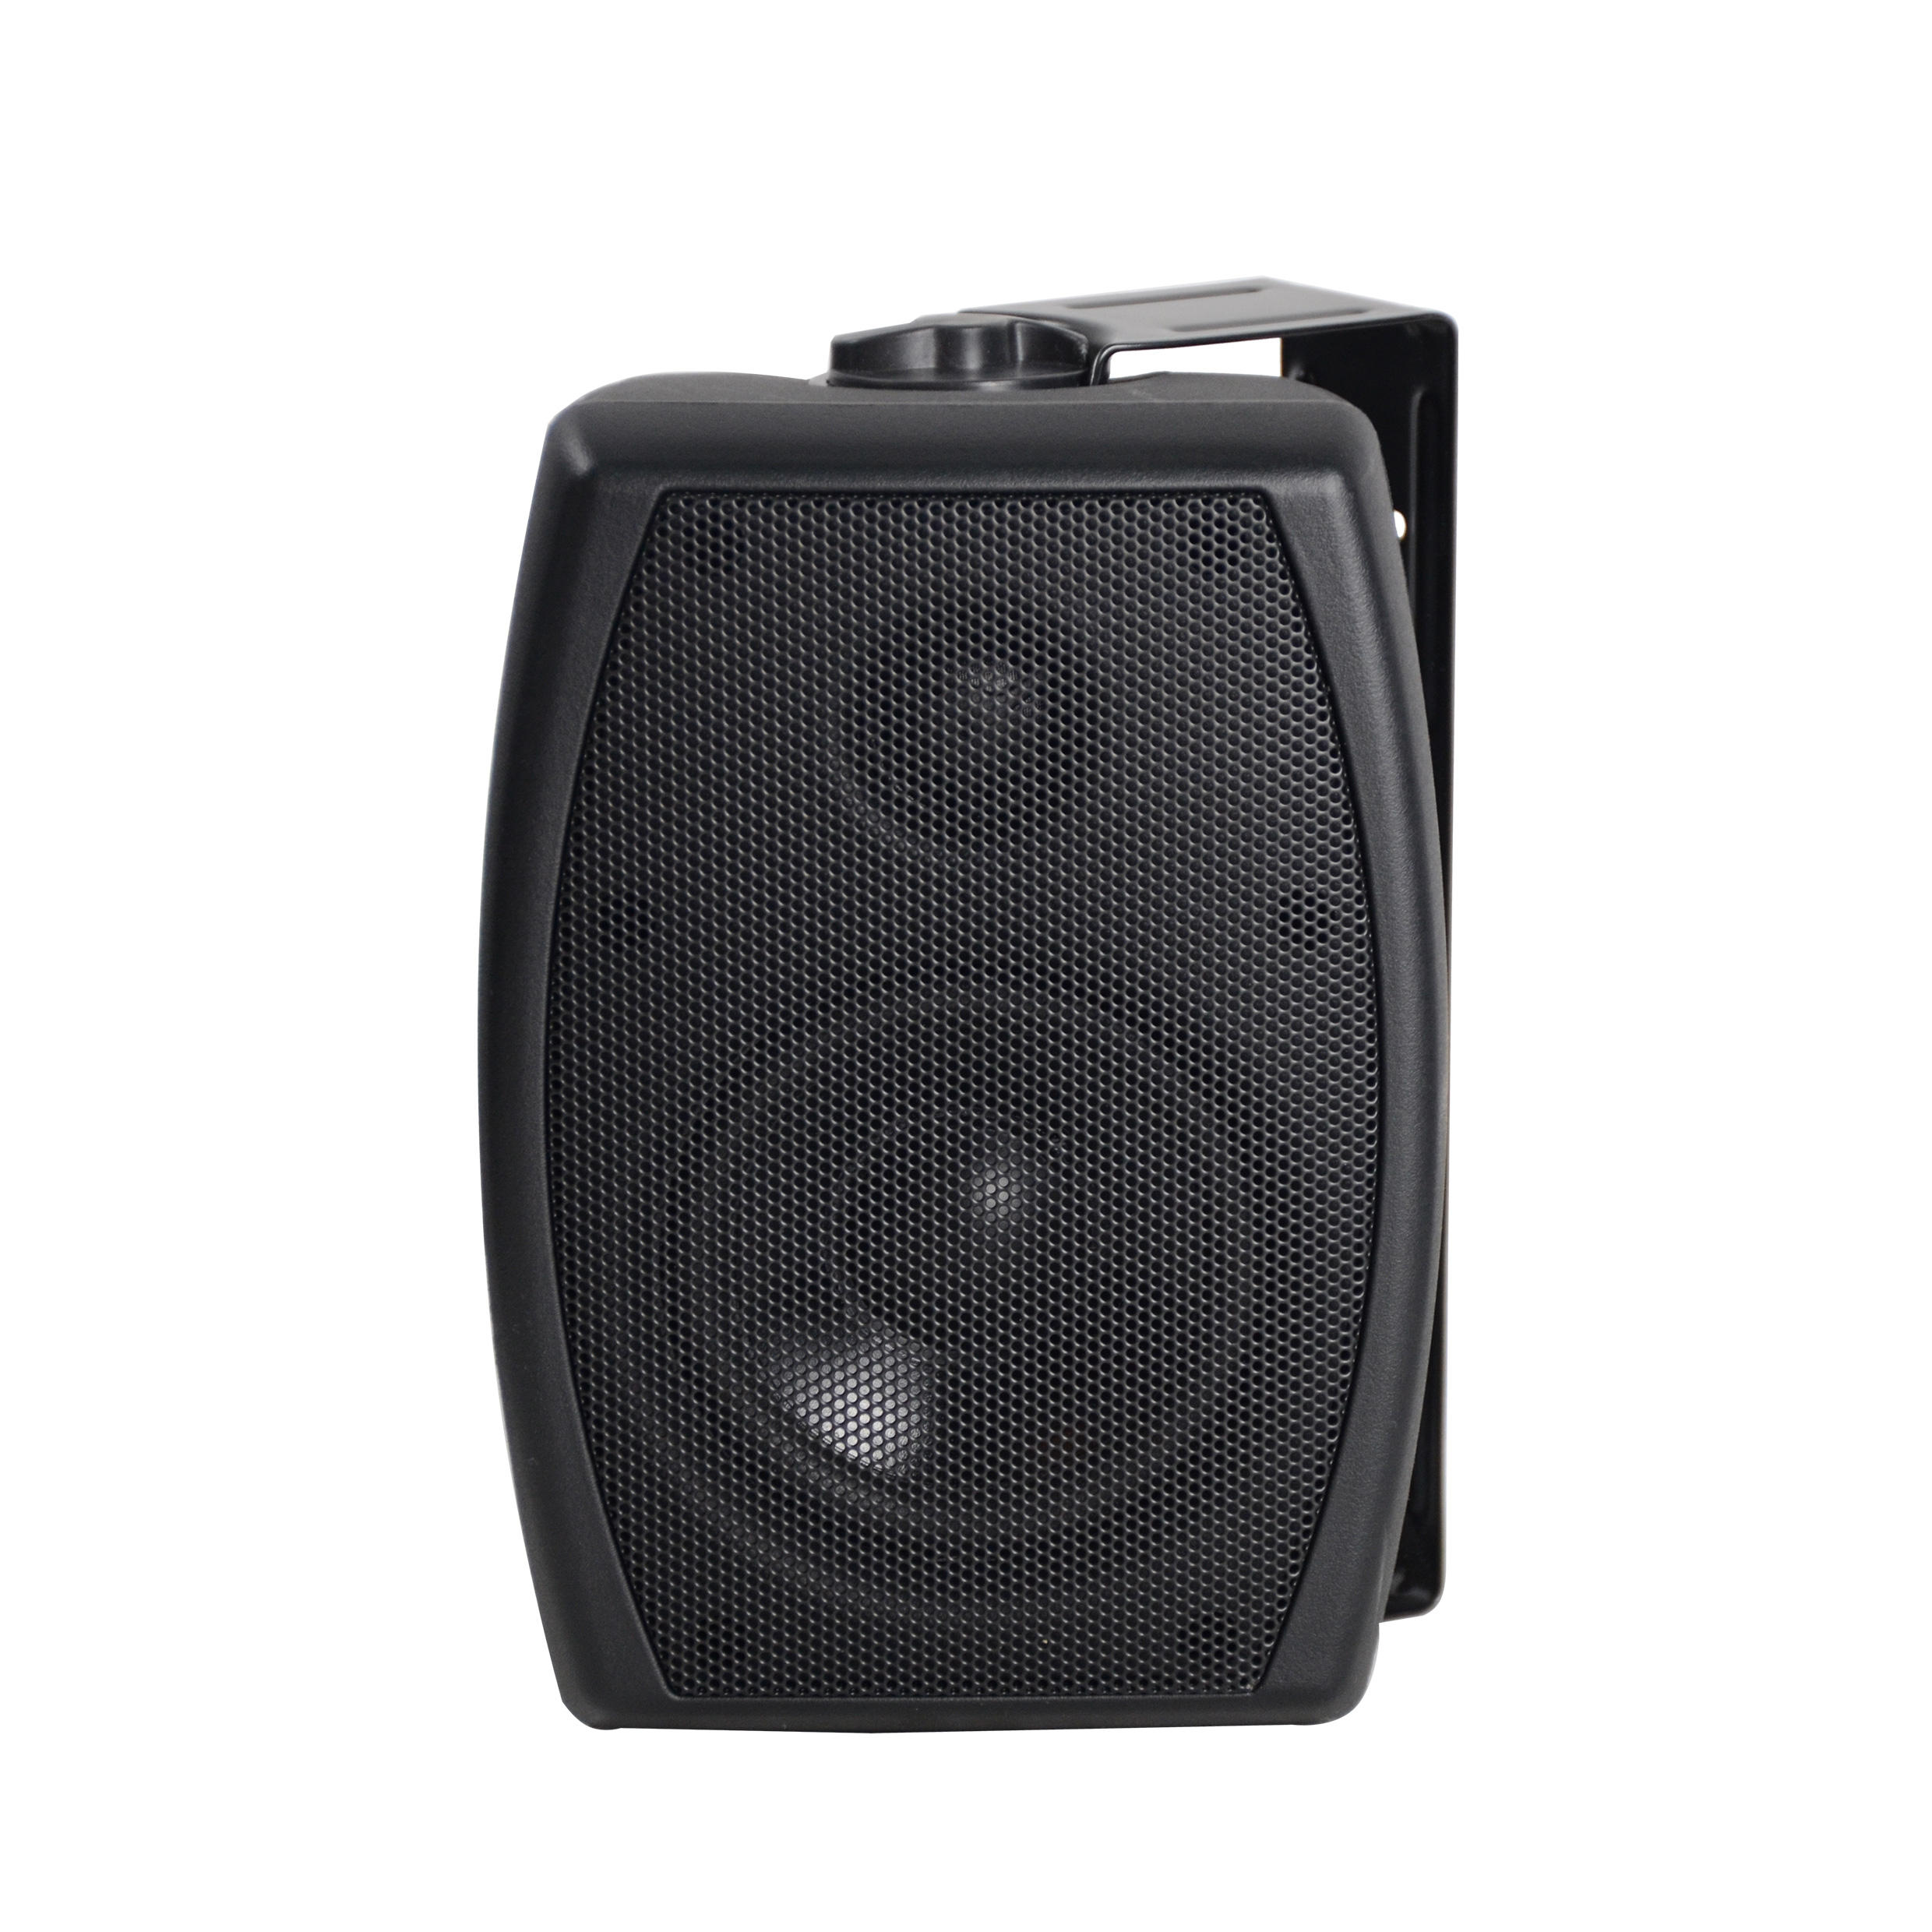 Rqsonic RA-4204TB Amazon Hot Sale Profesional 20W Alamat <span class=keywords><strong>Publik</strong></span> <span class=keywords><strong>Pasif</strong></span> Wall Mounted Speaker Sound Sistem